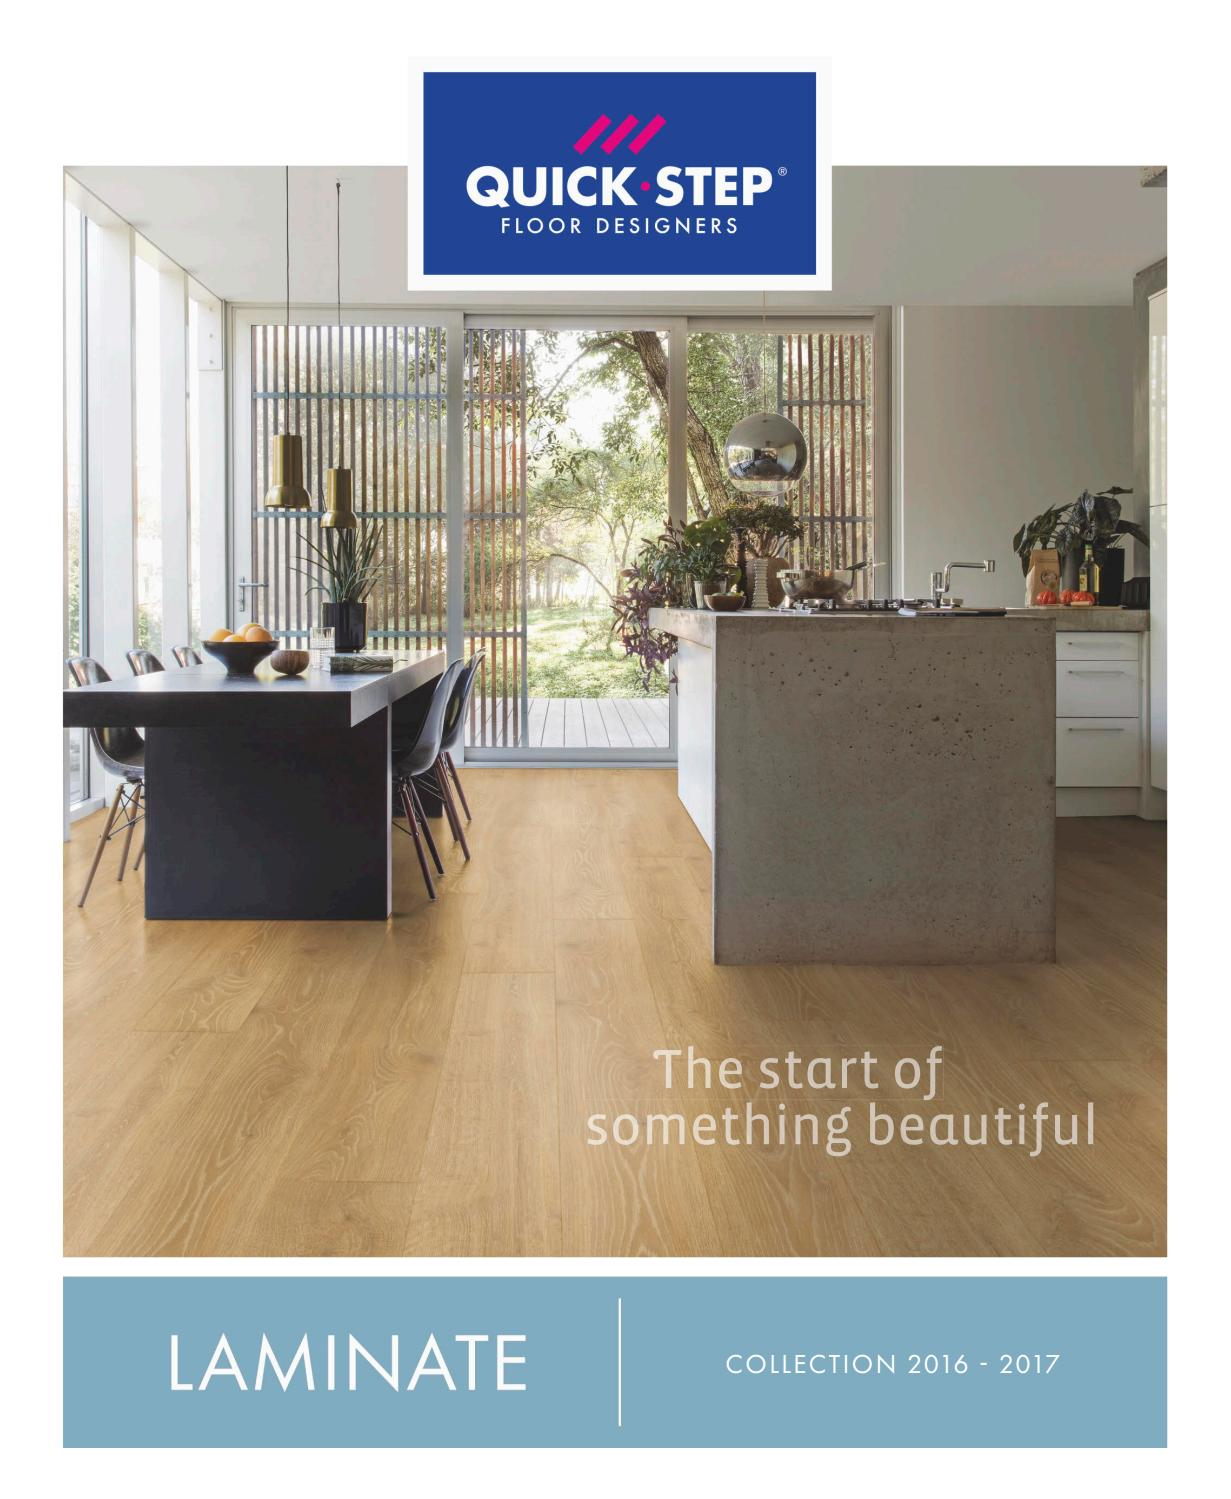 Quick Step Arte Leather Tile Dark Quick Step 2016 Lam En Z2 By Unilin Issuu